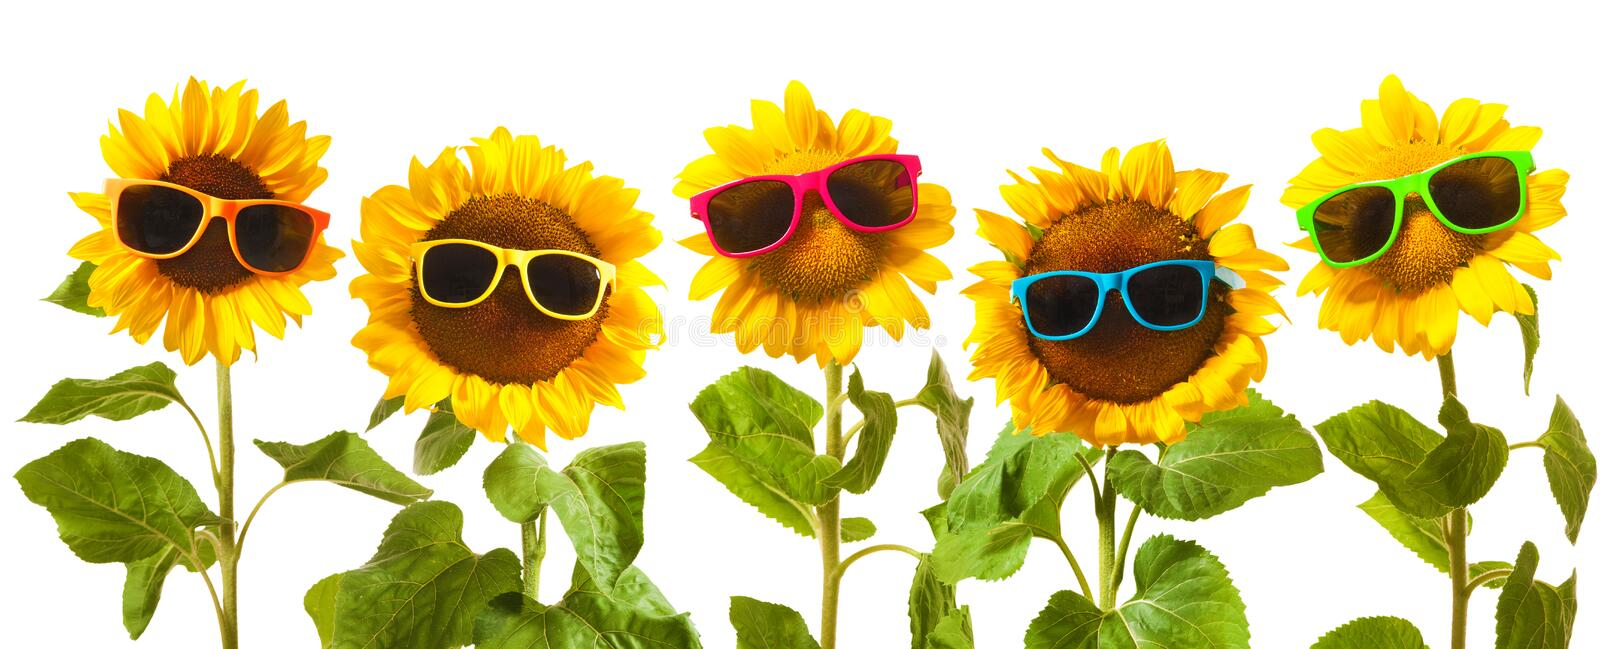 Sunflowers with sunglasses stock photo